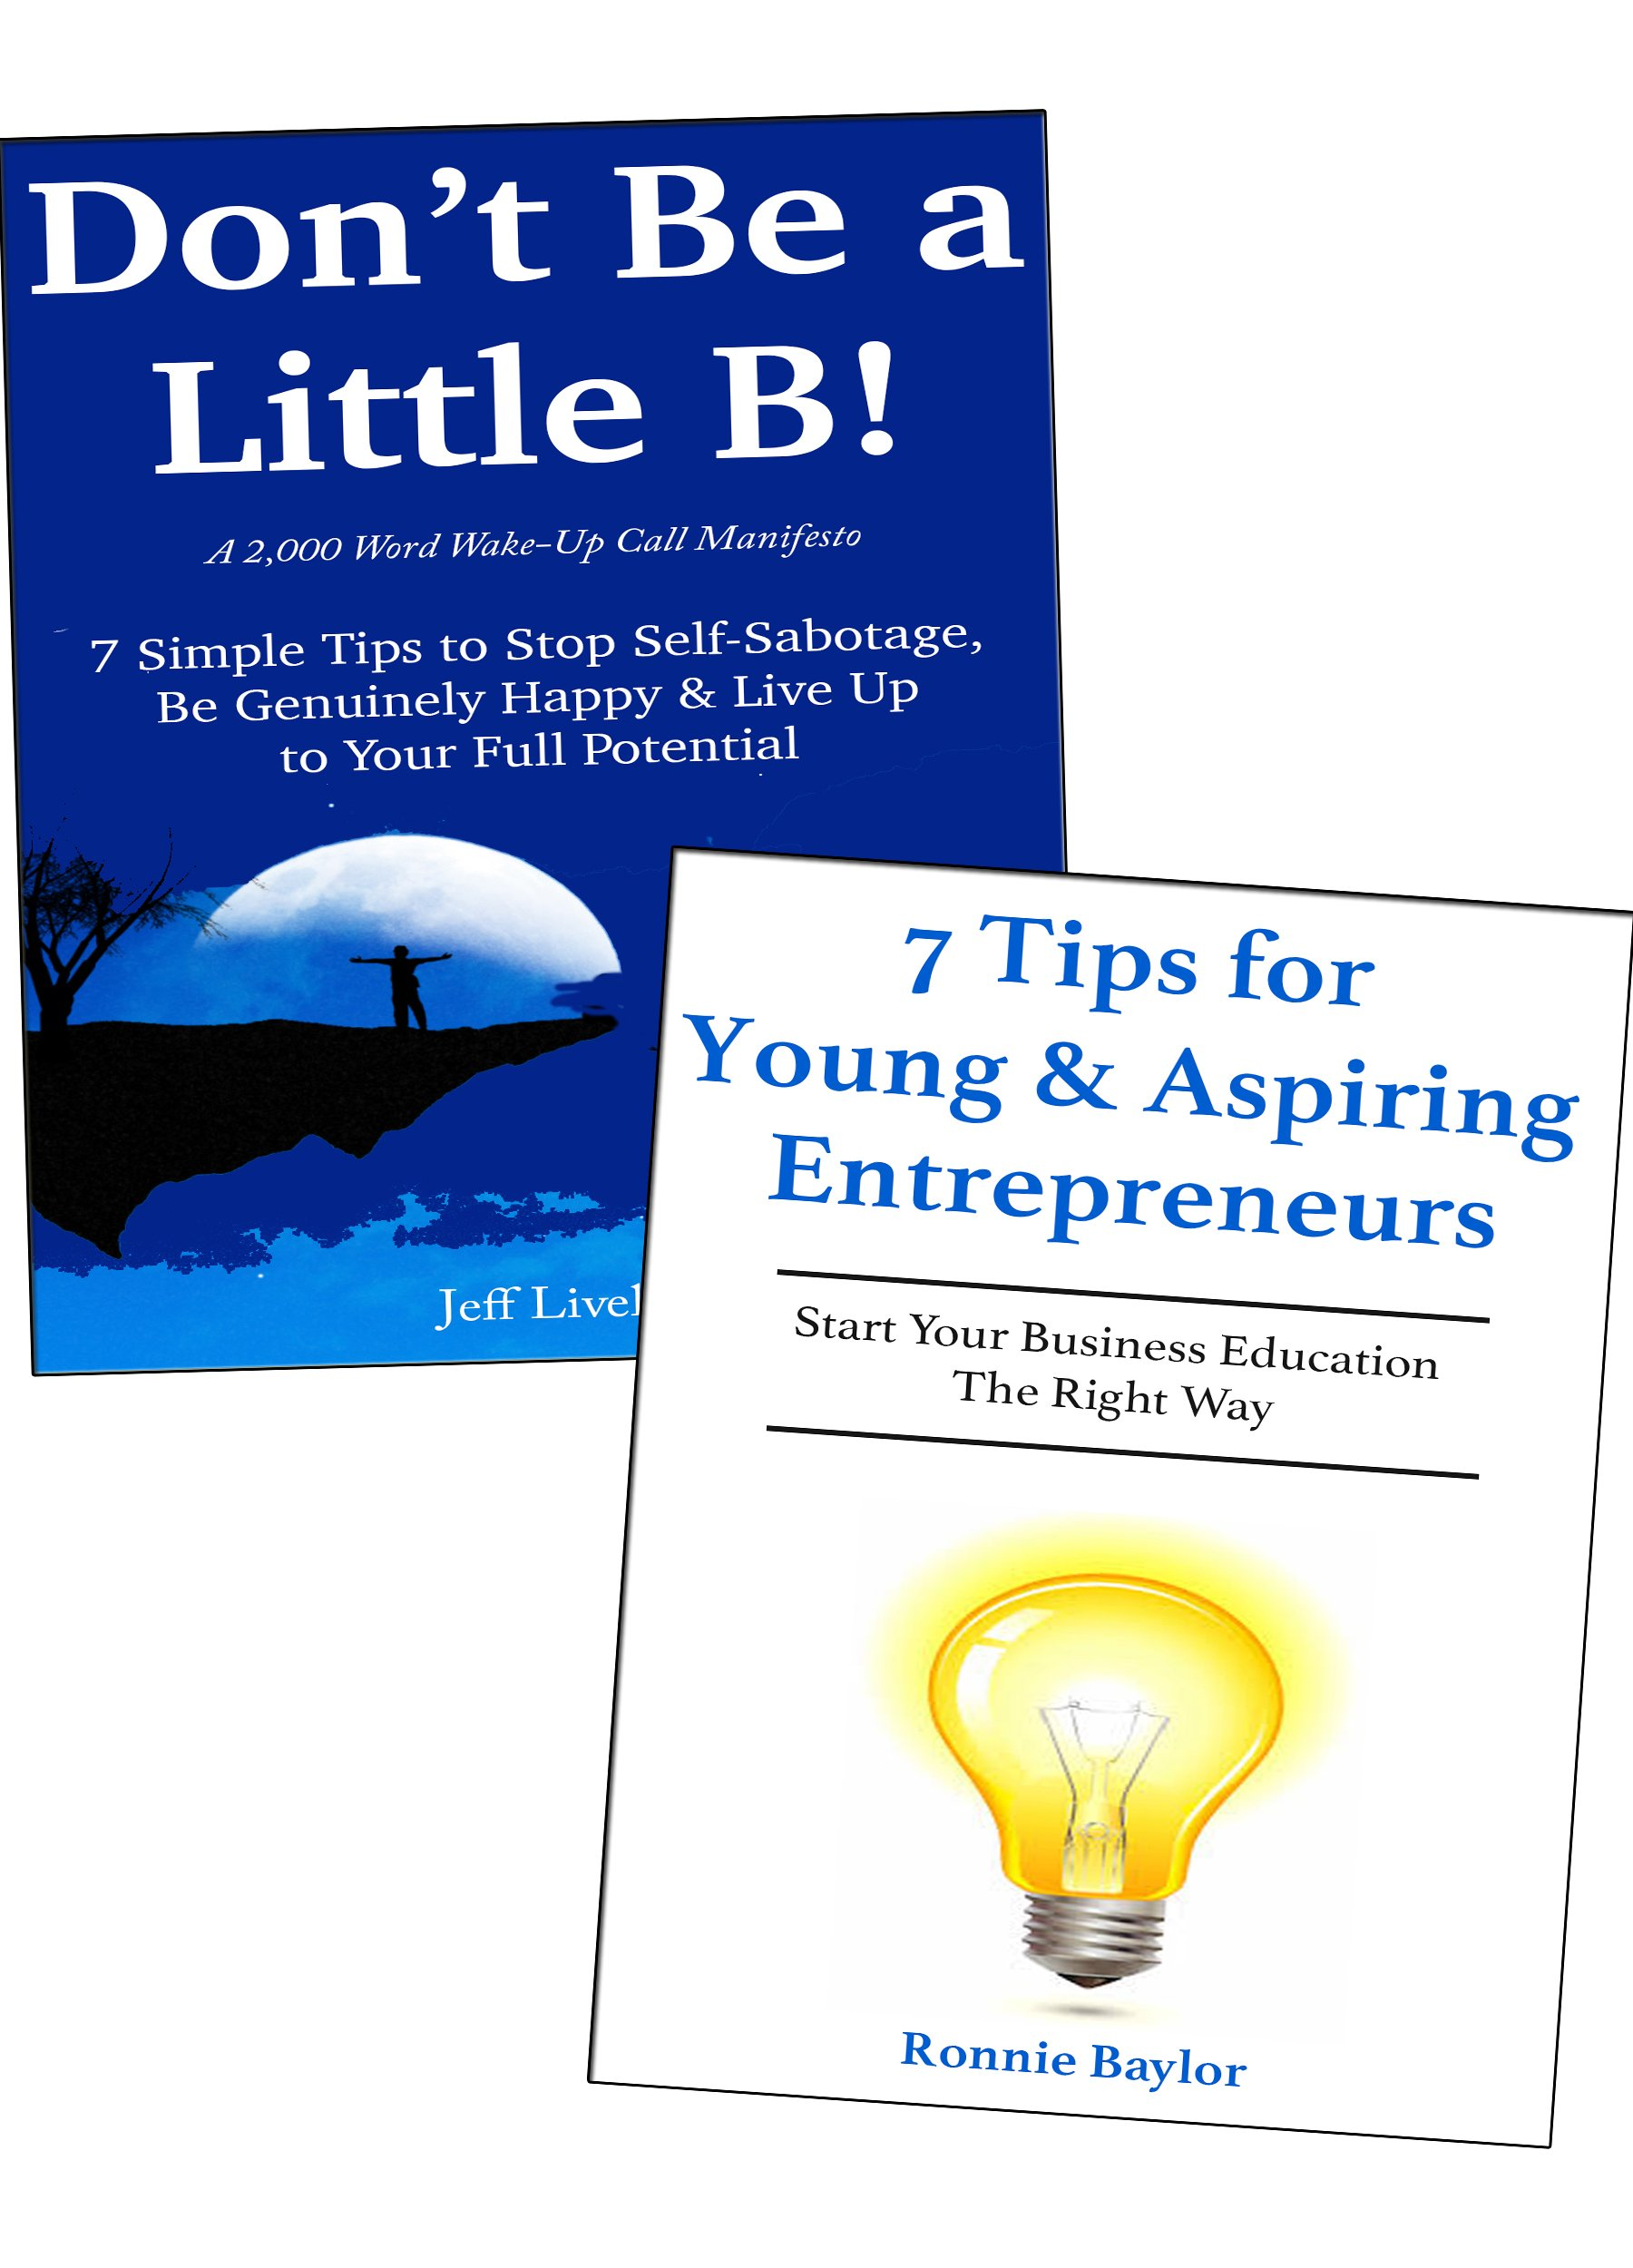 Entrepreneurship 101: How to Become a Successful Young Entrepreneur & Unlock Your Full Potential